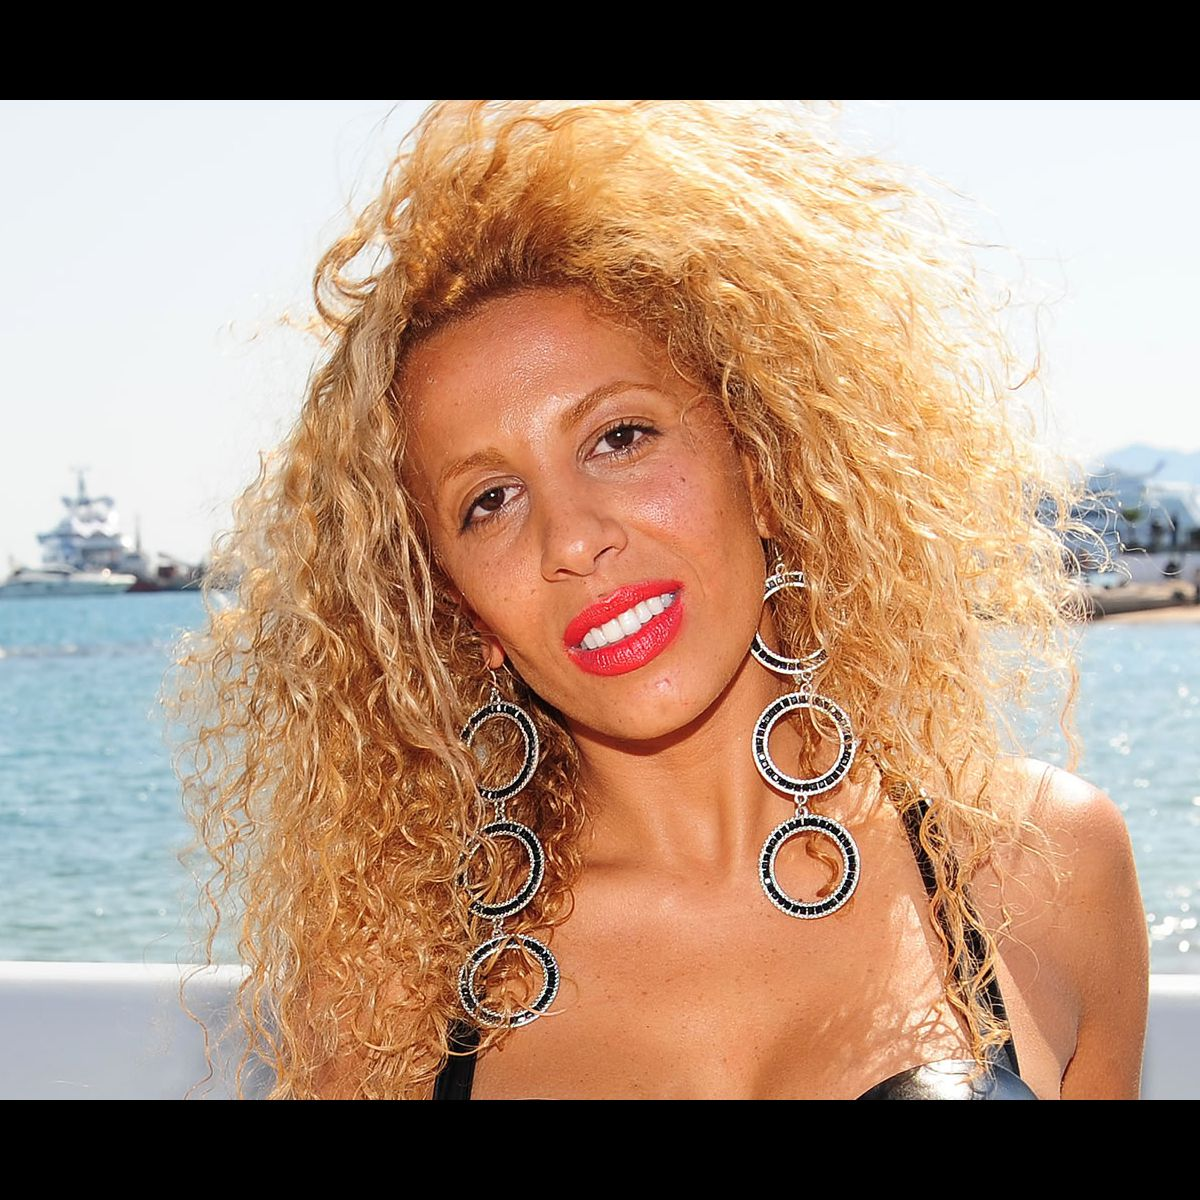 Afida turner actu photos et biographie puremedias for Biographie de afida turner